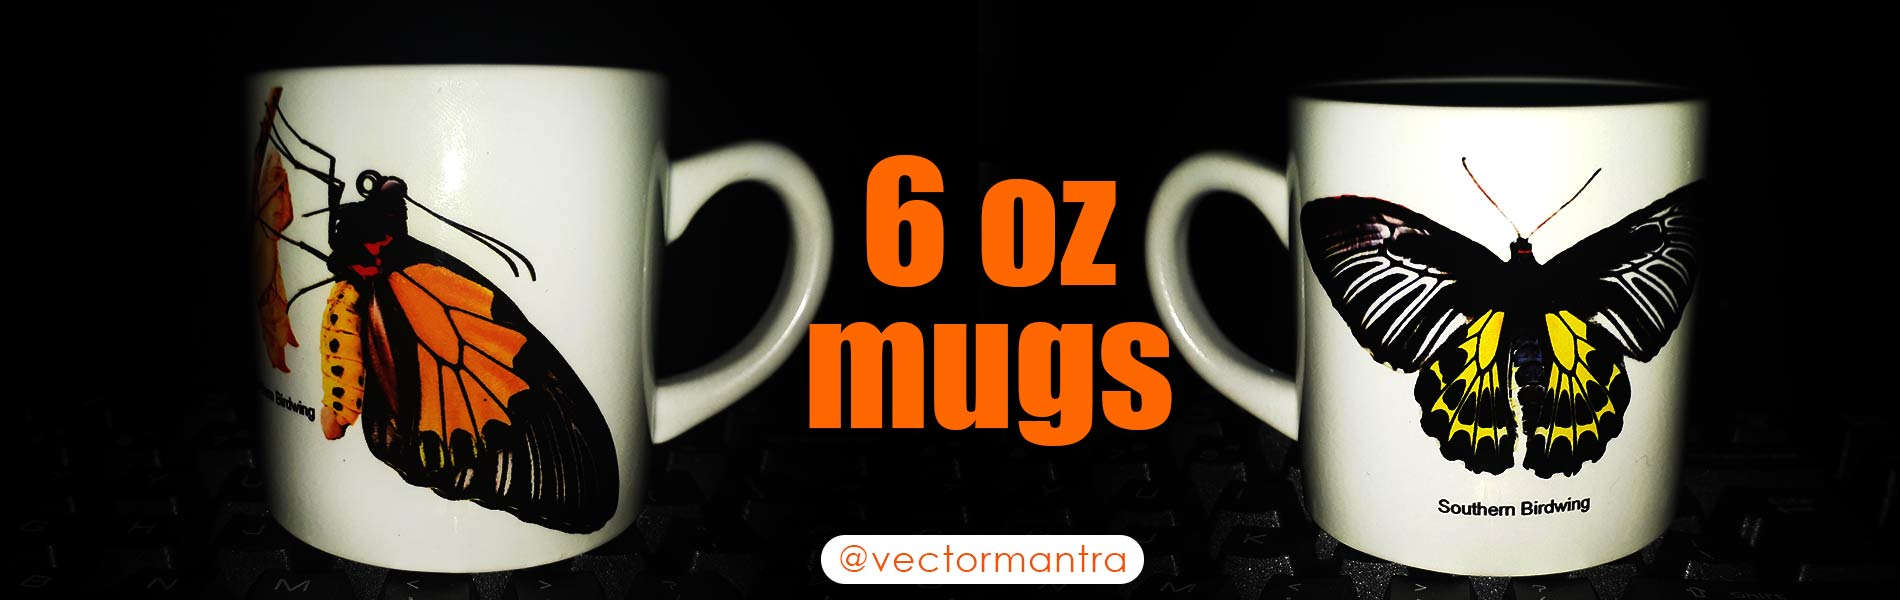 Mug Printing | Promotional Mugs Online | Vector Mantra Mugs | India